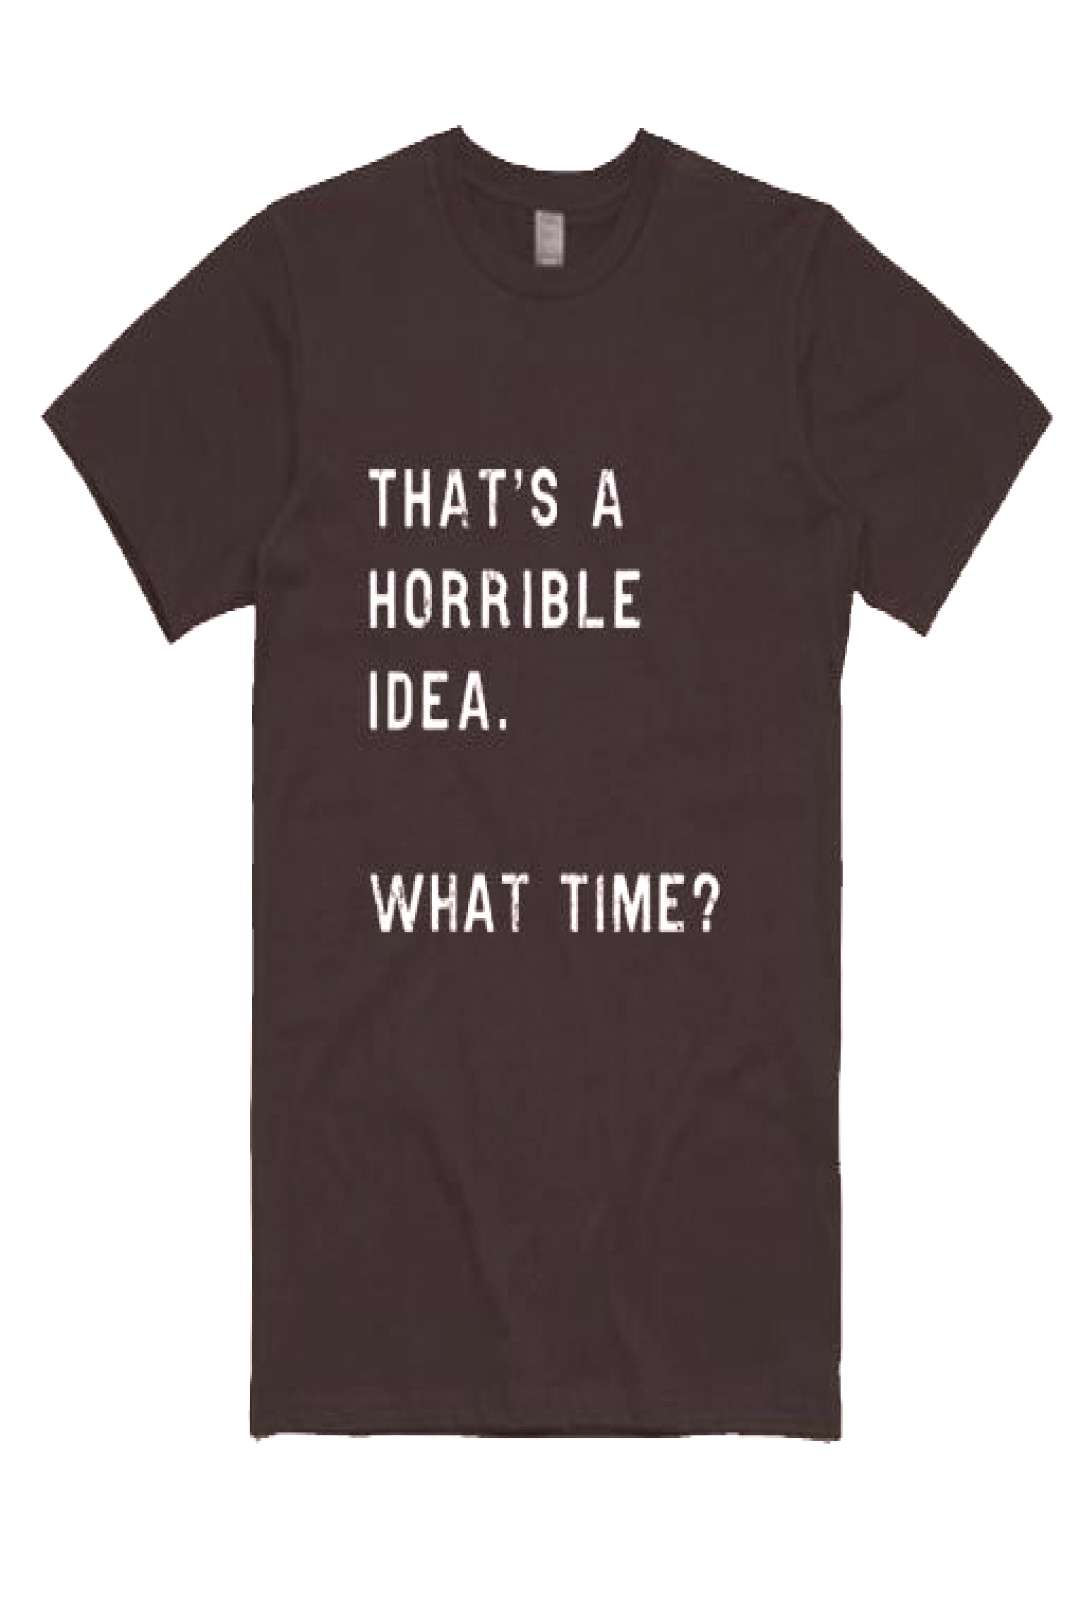 Thats A Horrible Idea What Time T-shirt  shirts with sayings for women - Meme Shirts - Ideas of Mem